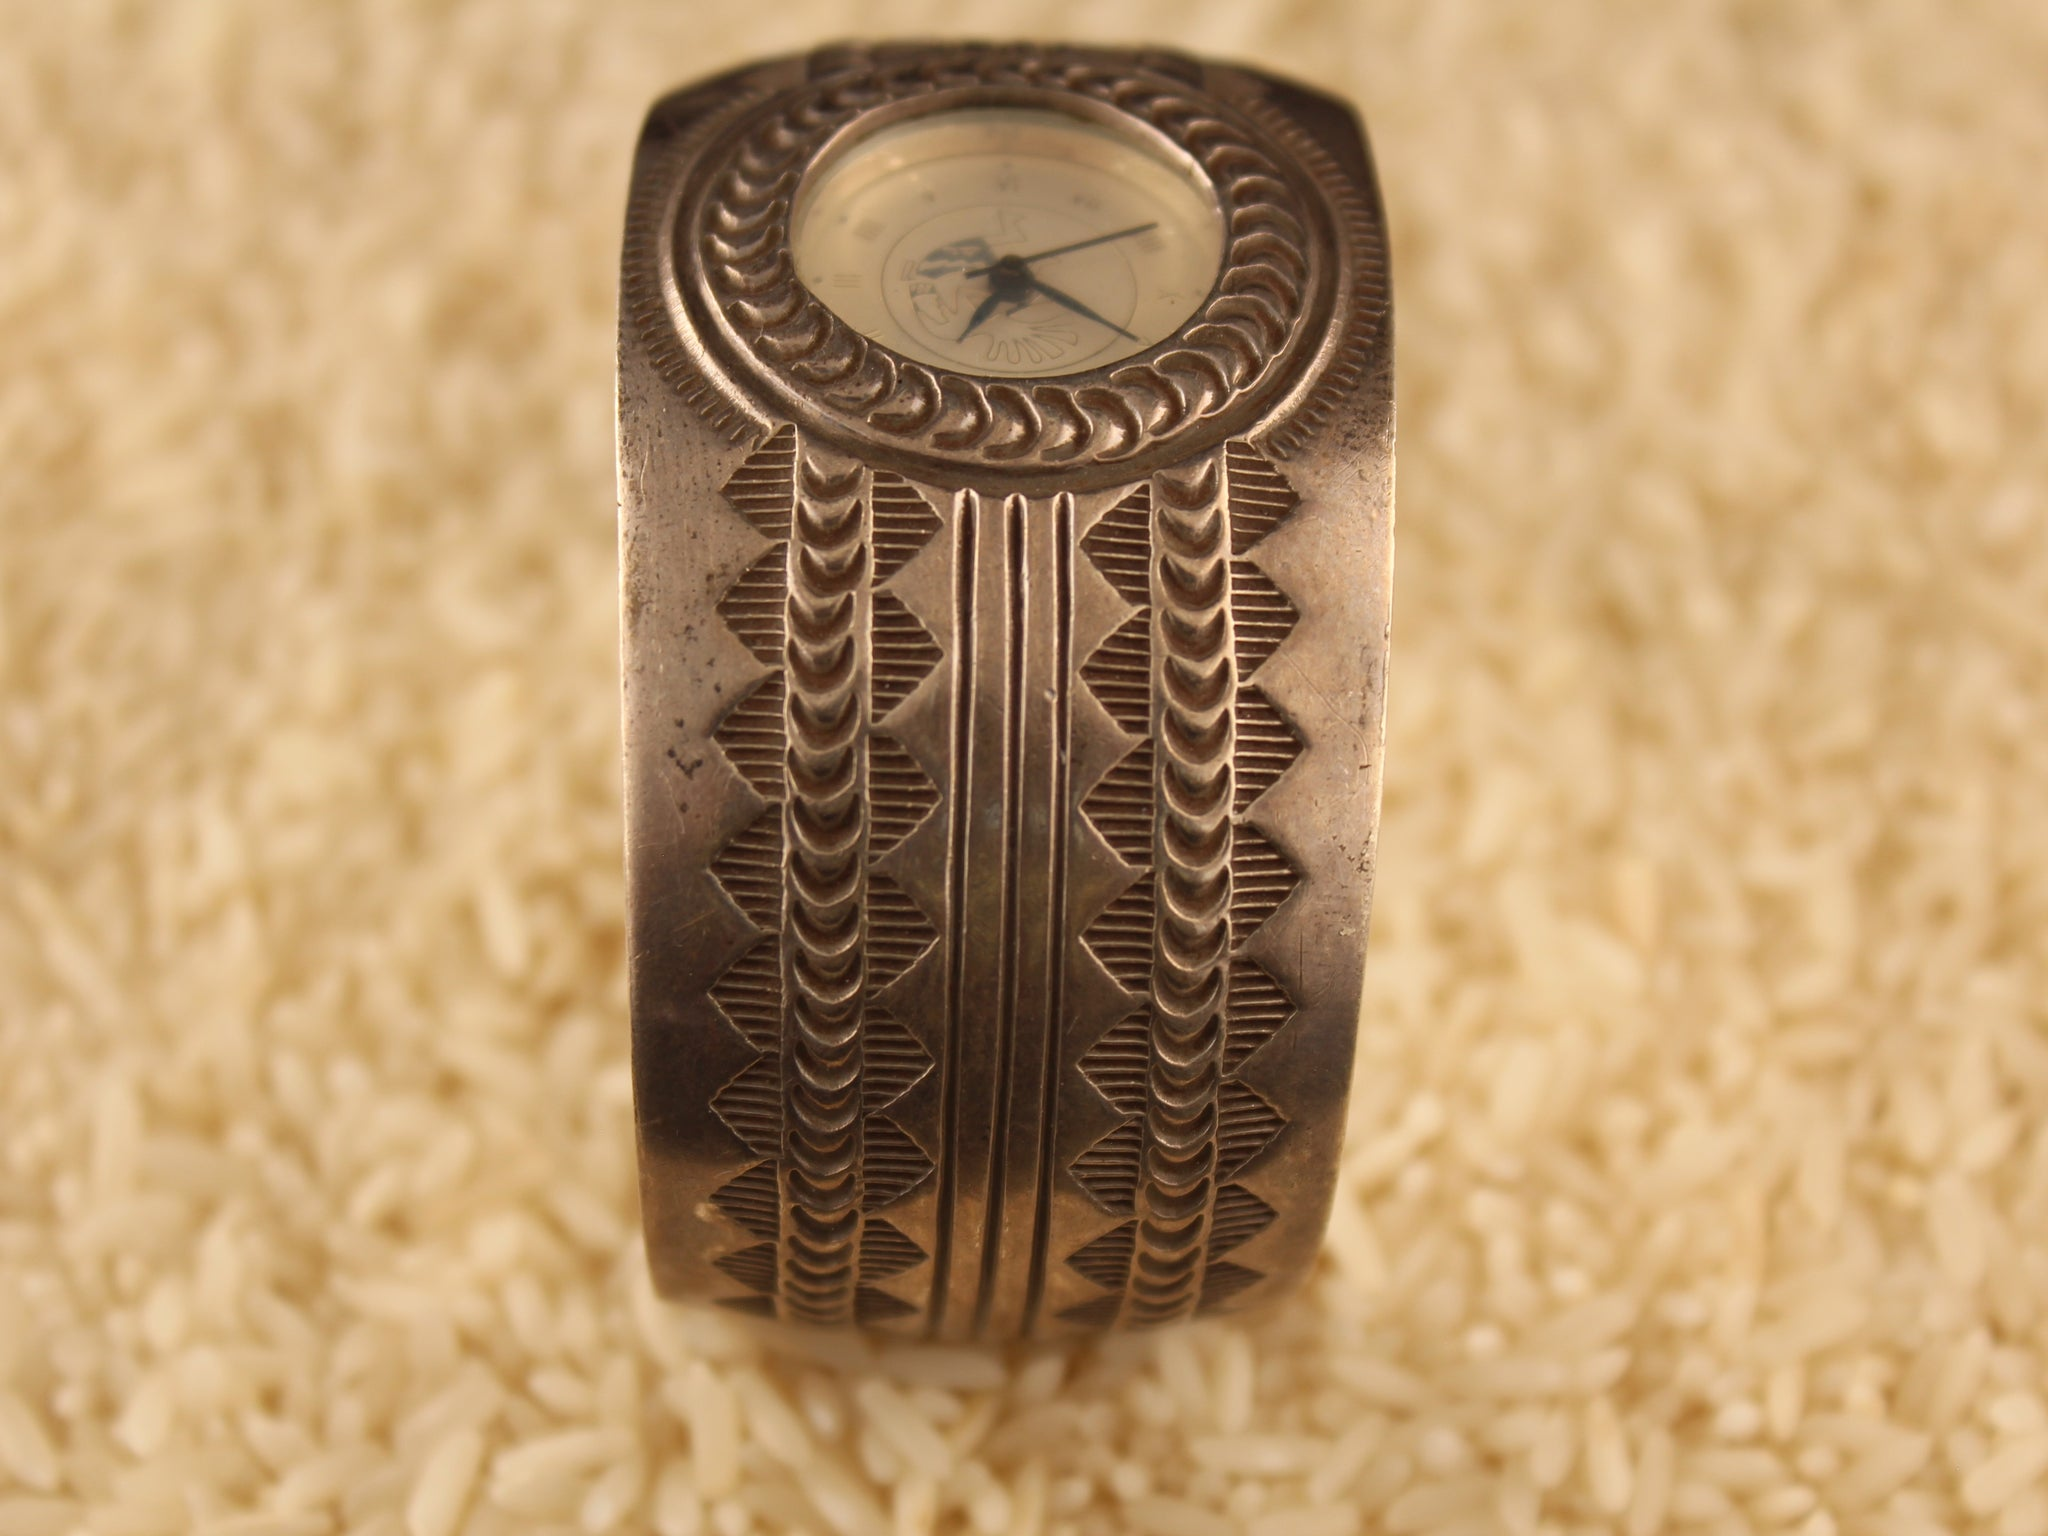 Vintage Ladies' Watch Cuff